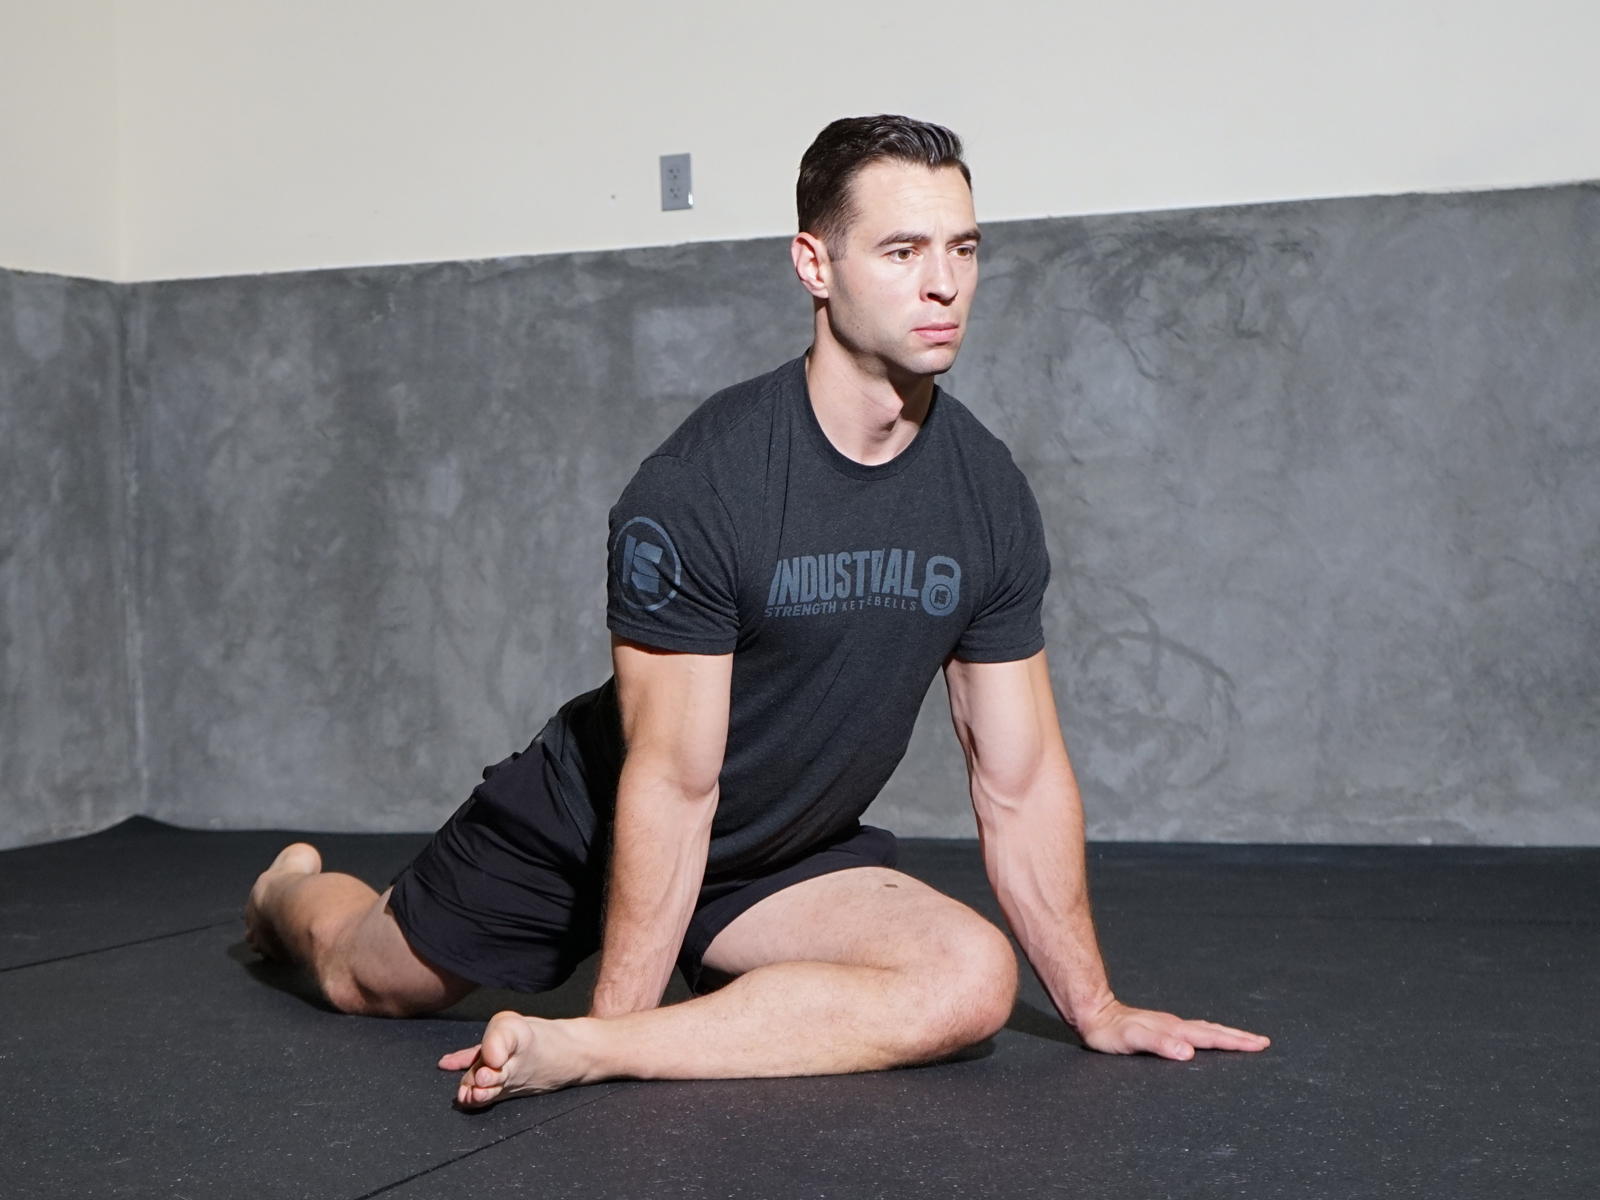 Man stretching hip on floor